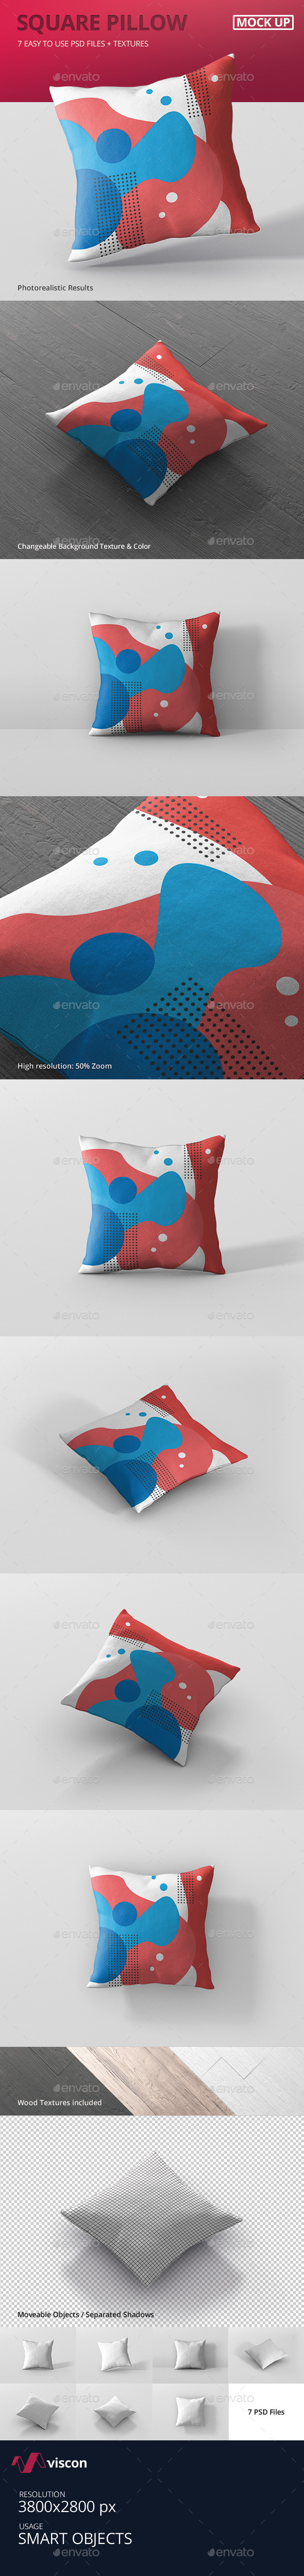 Pillow Mockup - Square - Miscellaneous Product Mock-Ups